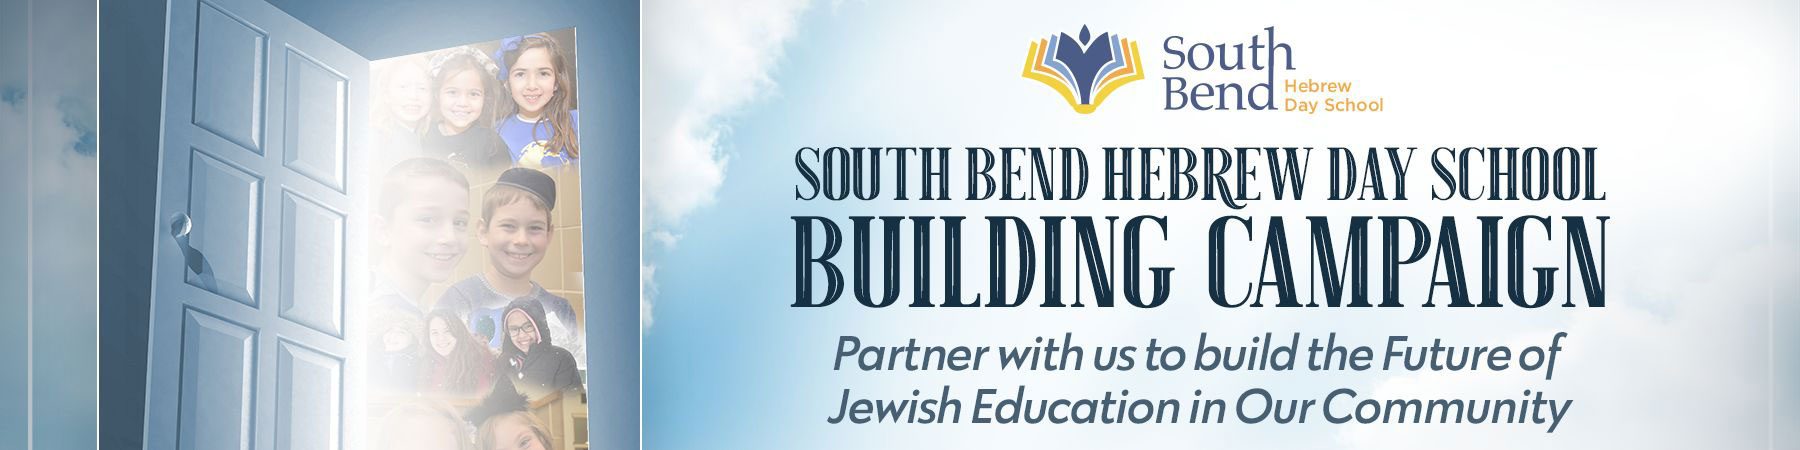 South Bend Hebrew Day School